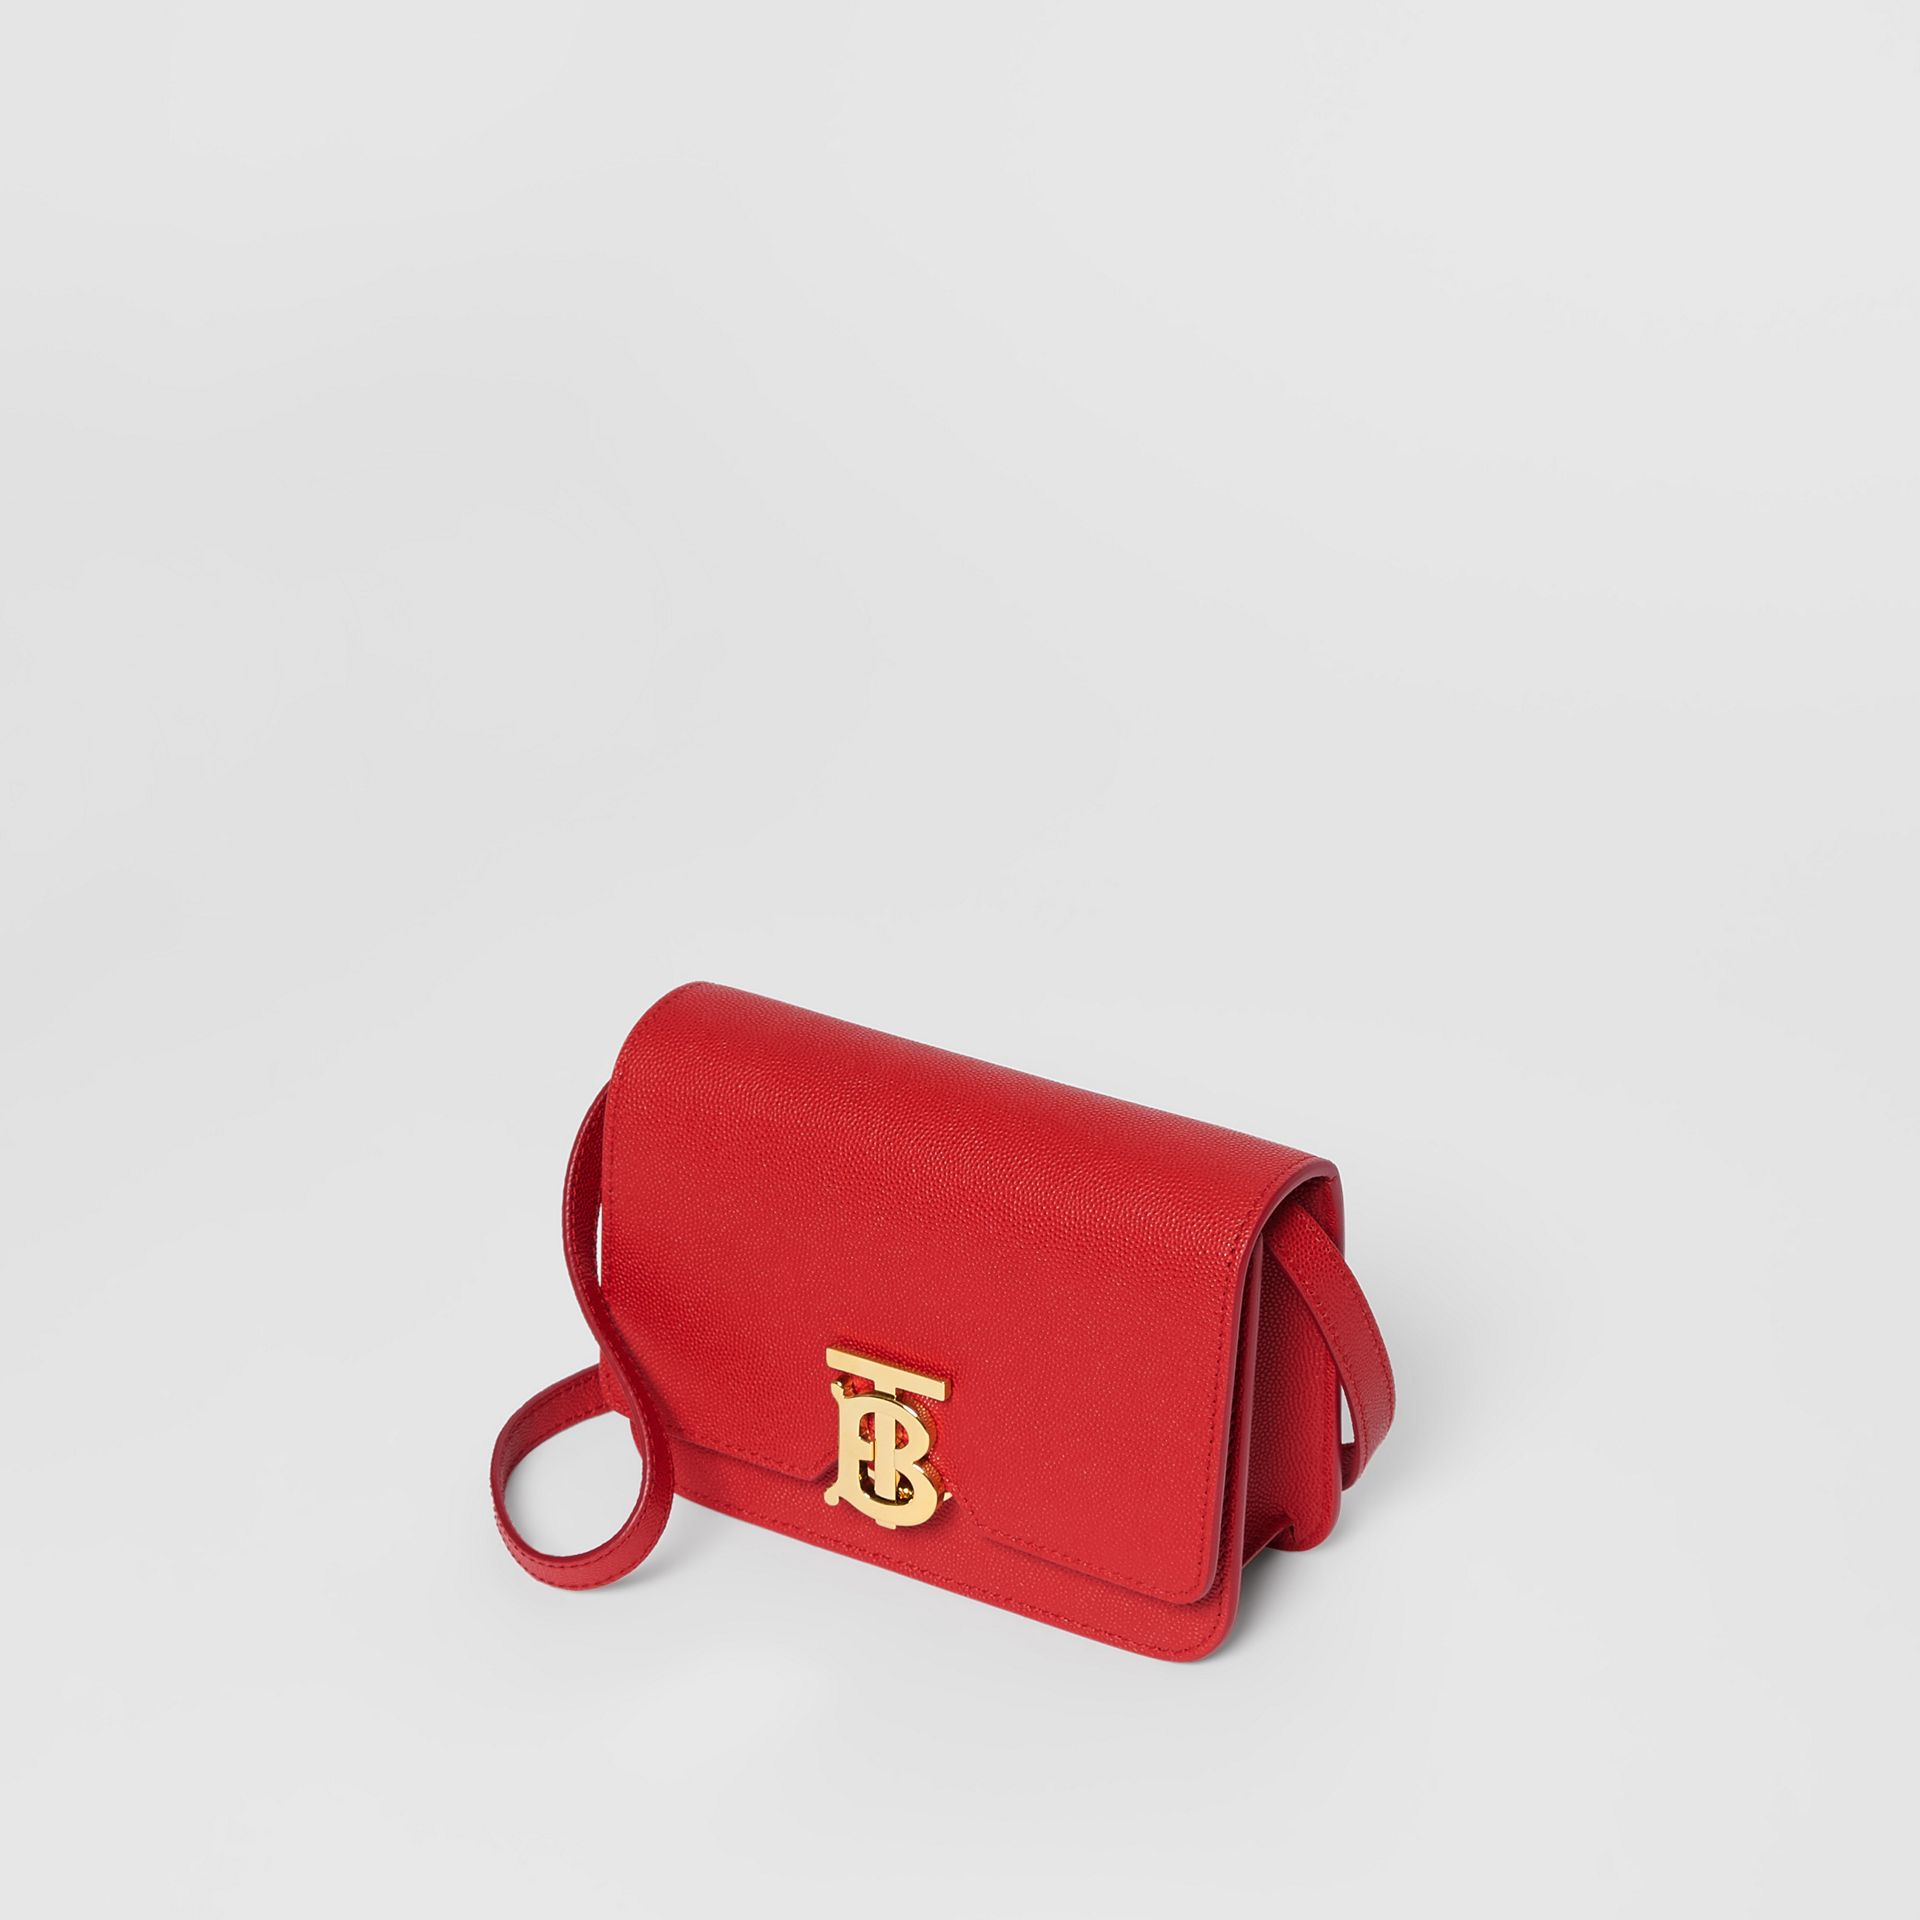 Mini Grainy Leather TB Bag in Bright Red - Women | Burberry Singapore - gallery image 2